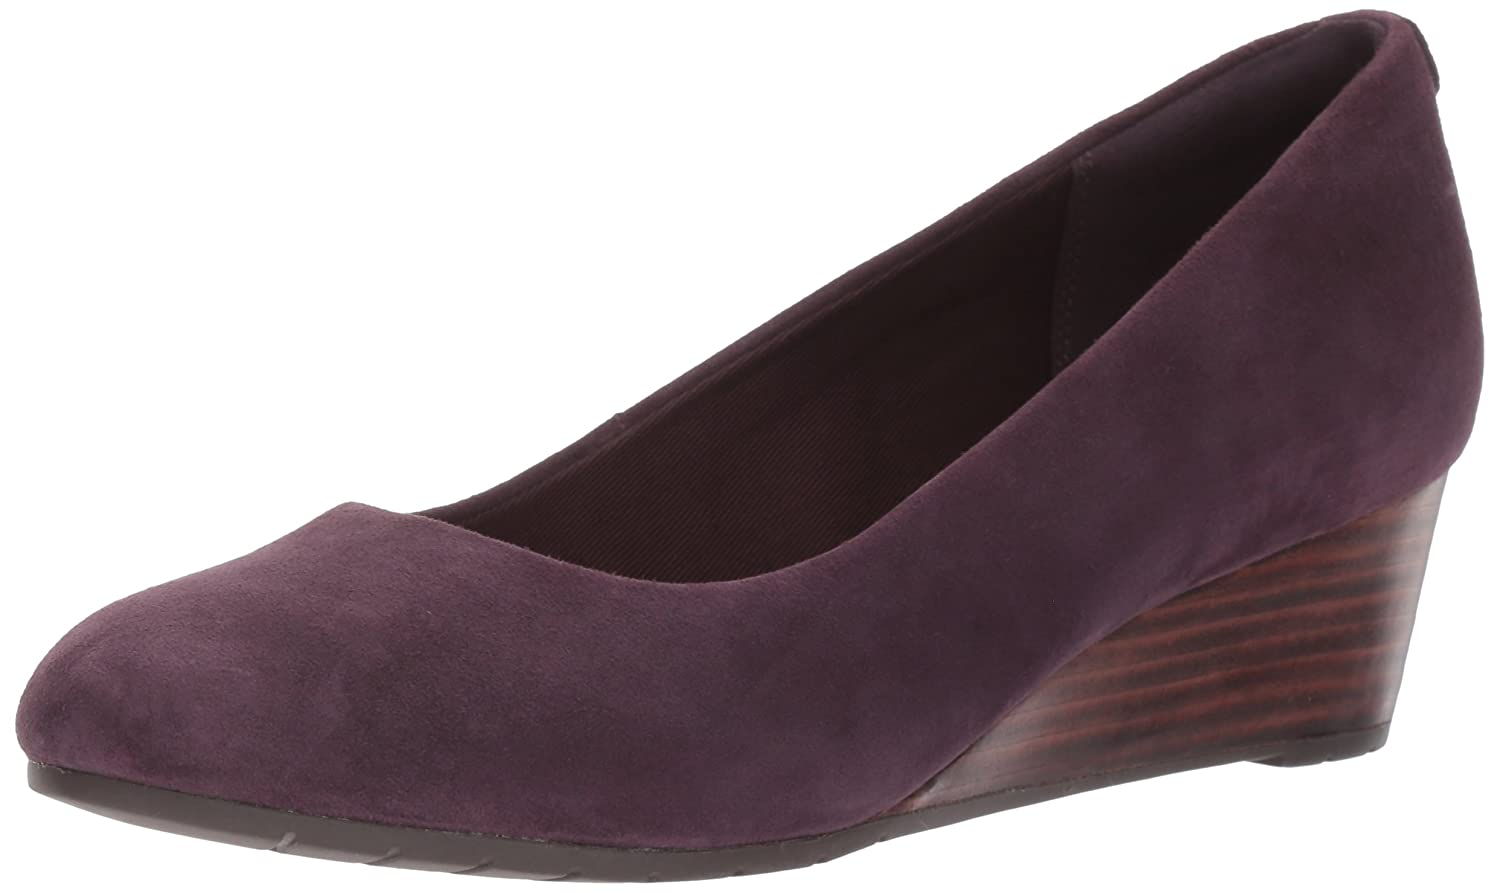 CLARKS Women's Vendra Bloom Wedge Pump B01NAL6IS7 6.5 B(M) US|Aubergine Suede